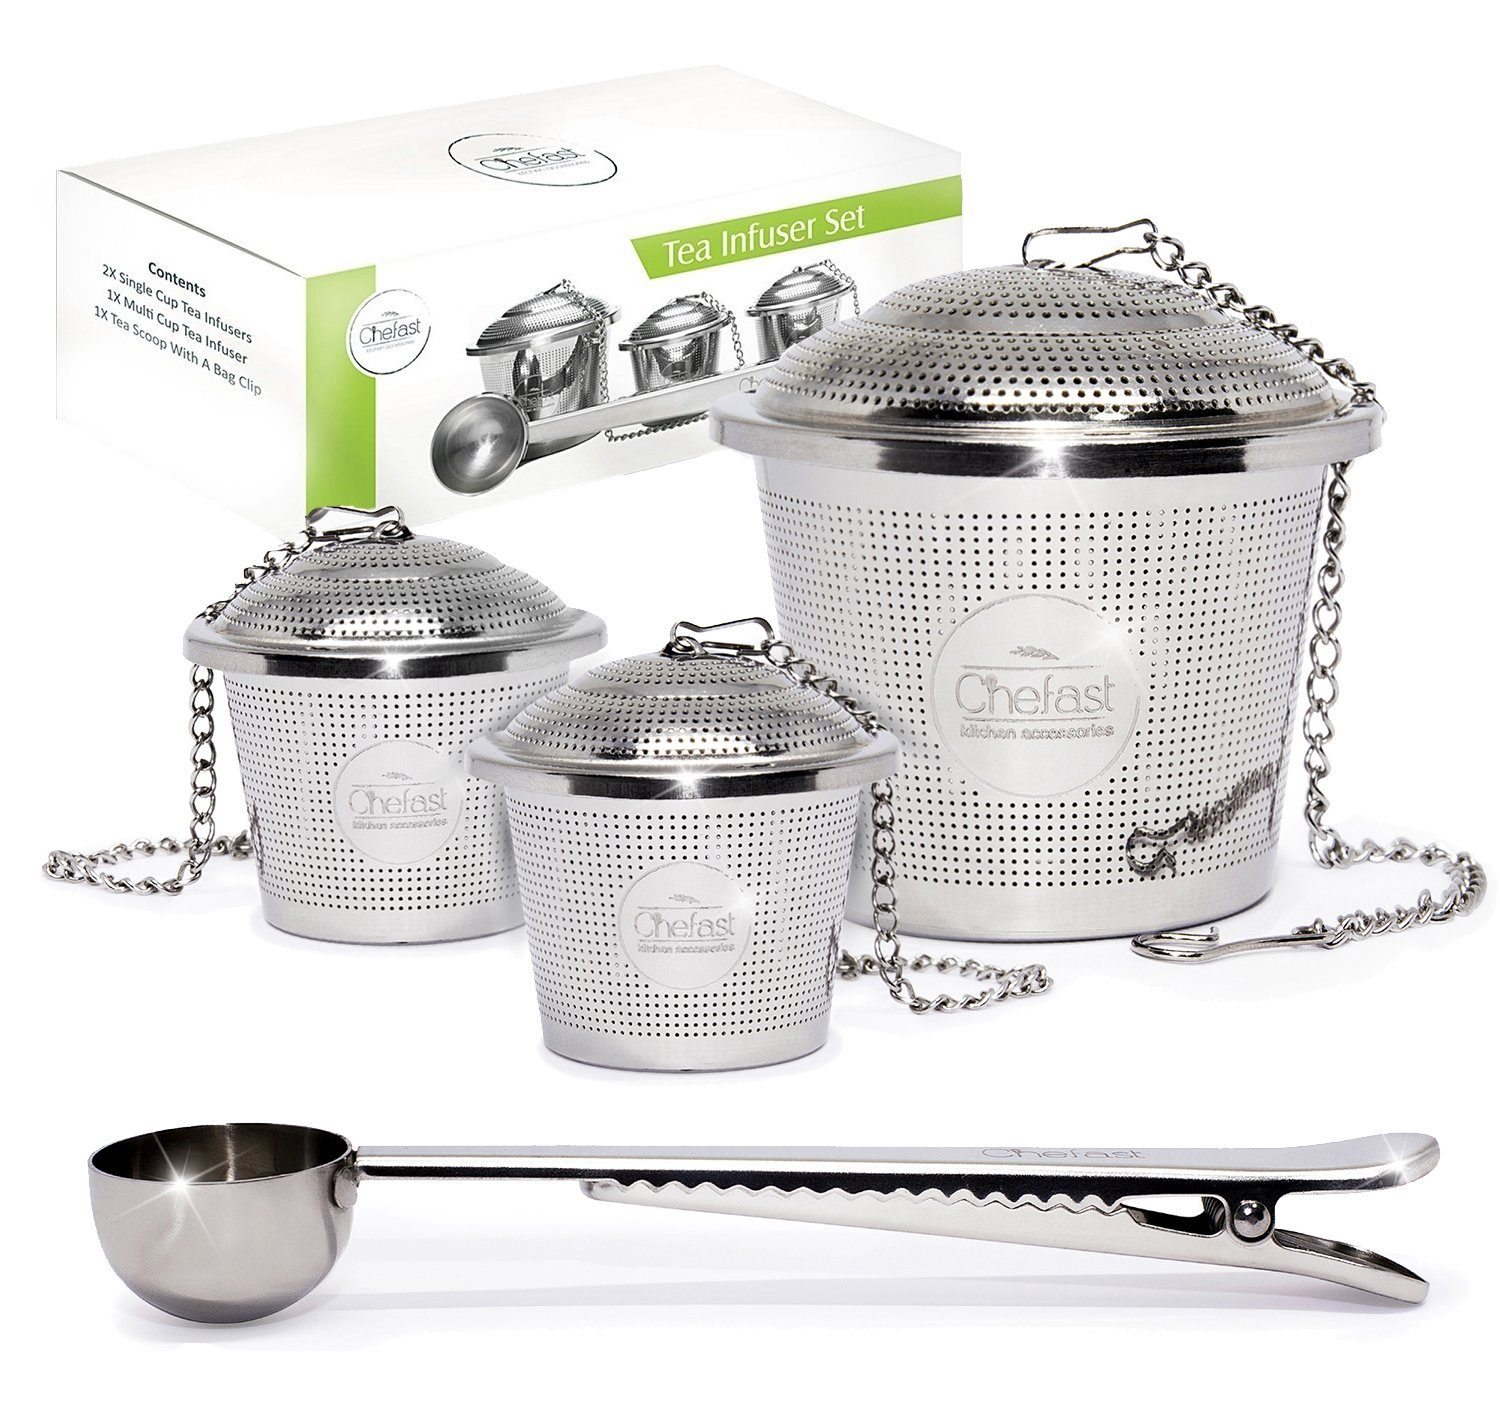 Tea Infuser Set by Chefast (2+1 Pack) - Combo Kit of 1 Large and 2 Single Cup Loose Leaf Infusers, Plus Metal Scoop with Clip - Reusable Stainless Steel Strainers | Diffusers | Balls | Steepers